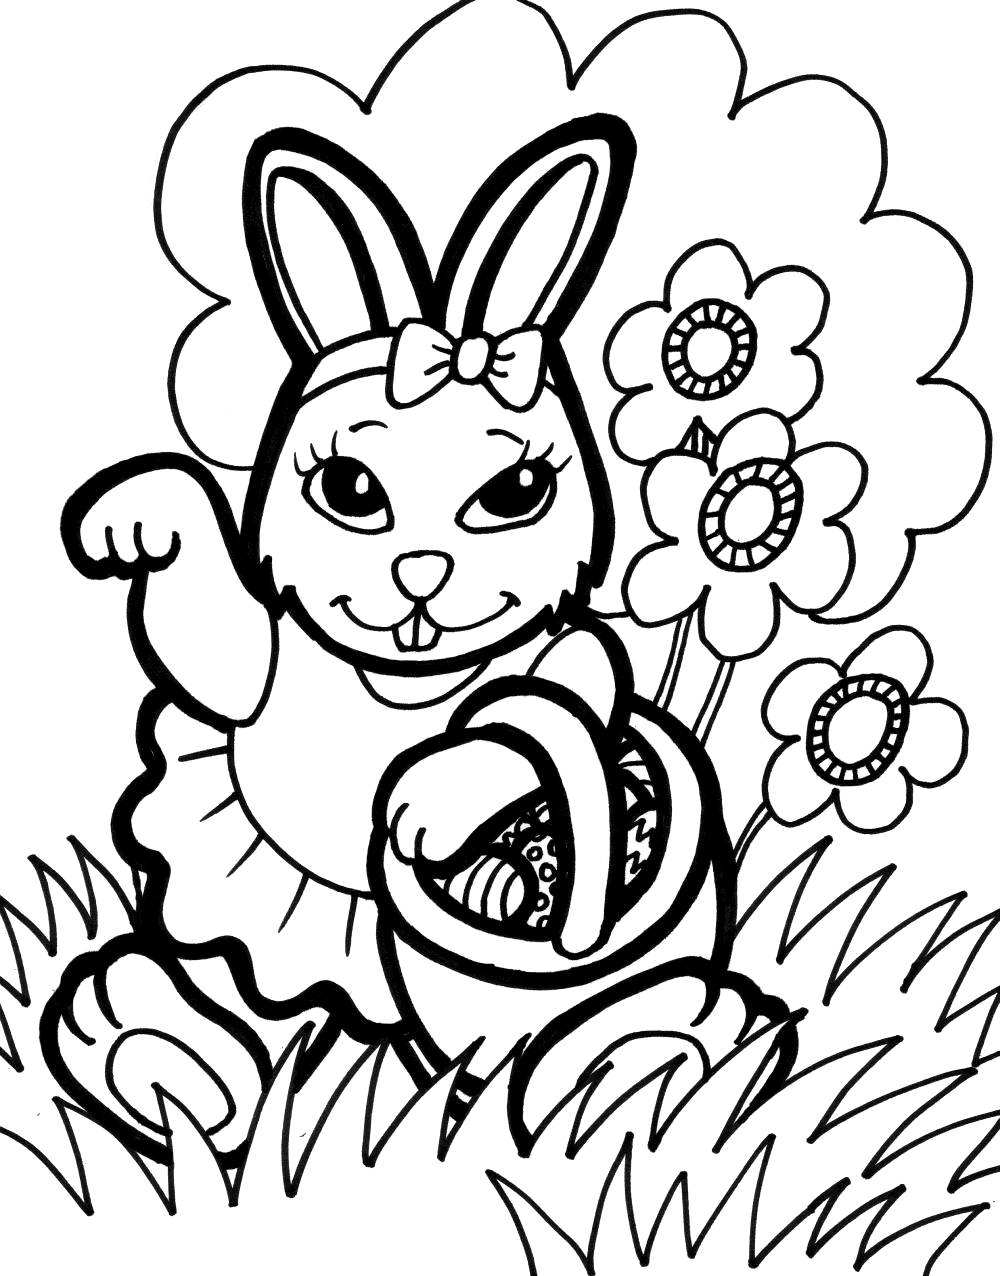 bunny coloring book rabbit to download for free rabbit kids coloring pages coloring book bunny